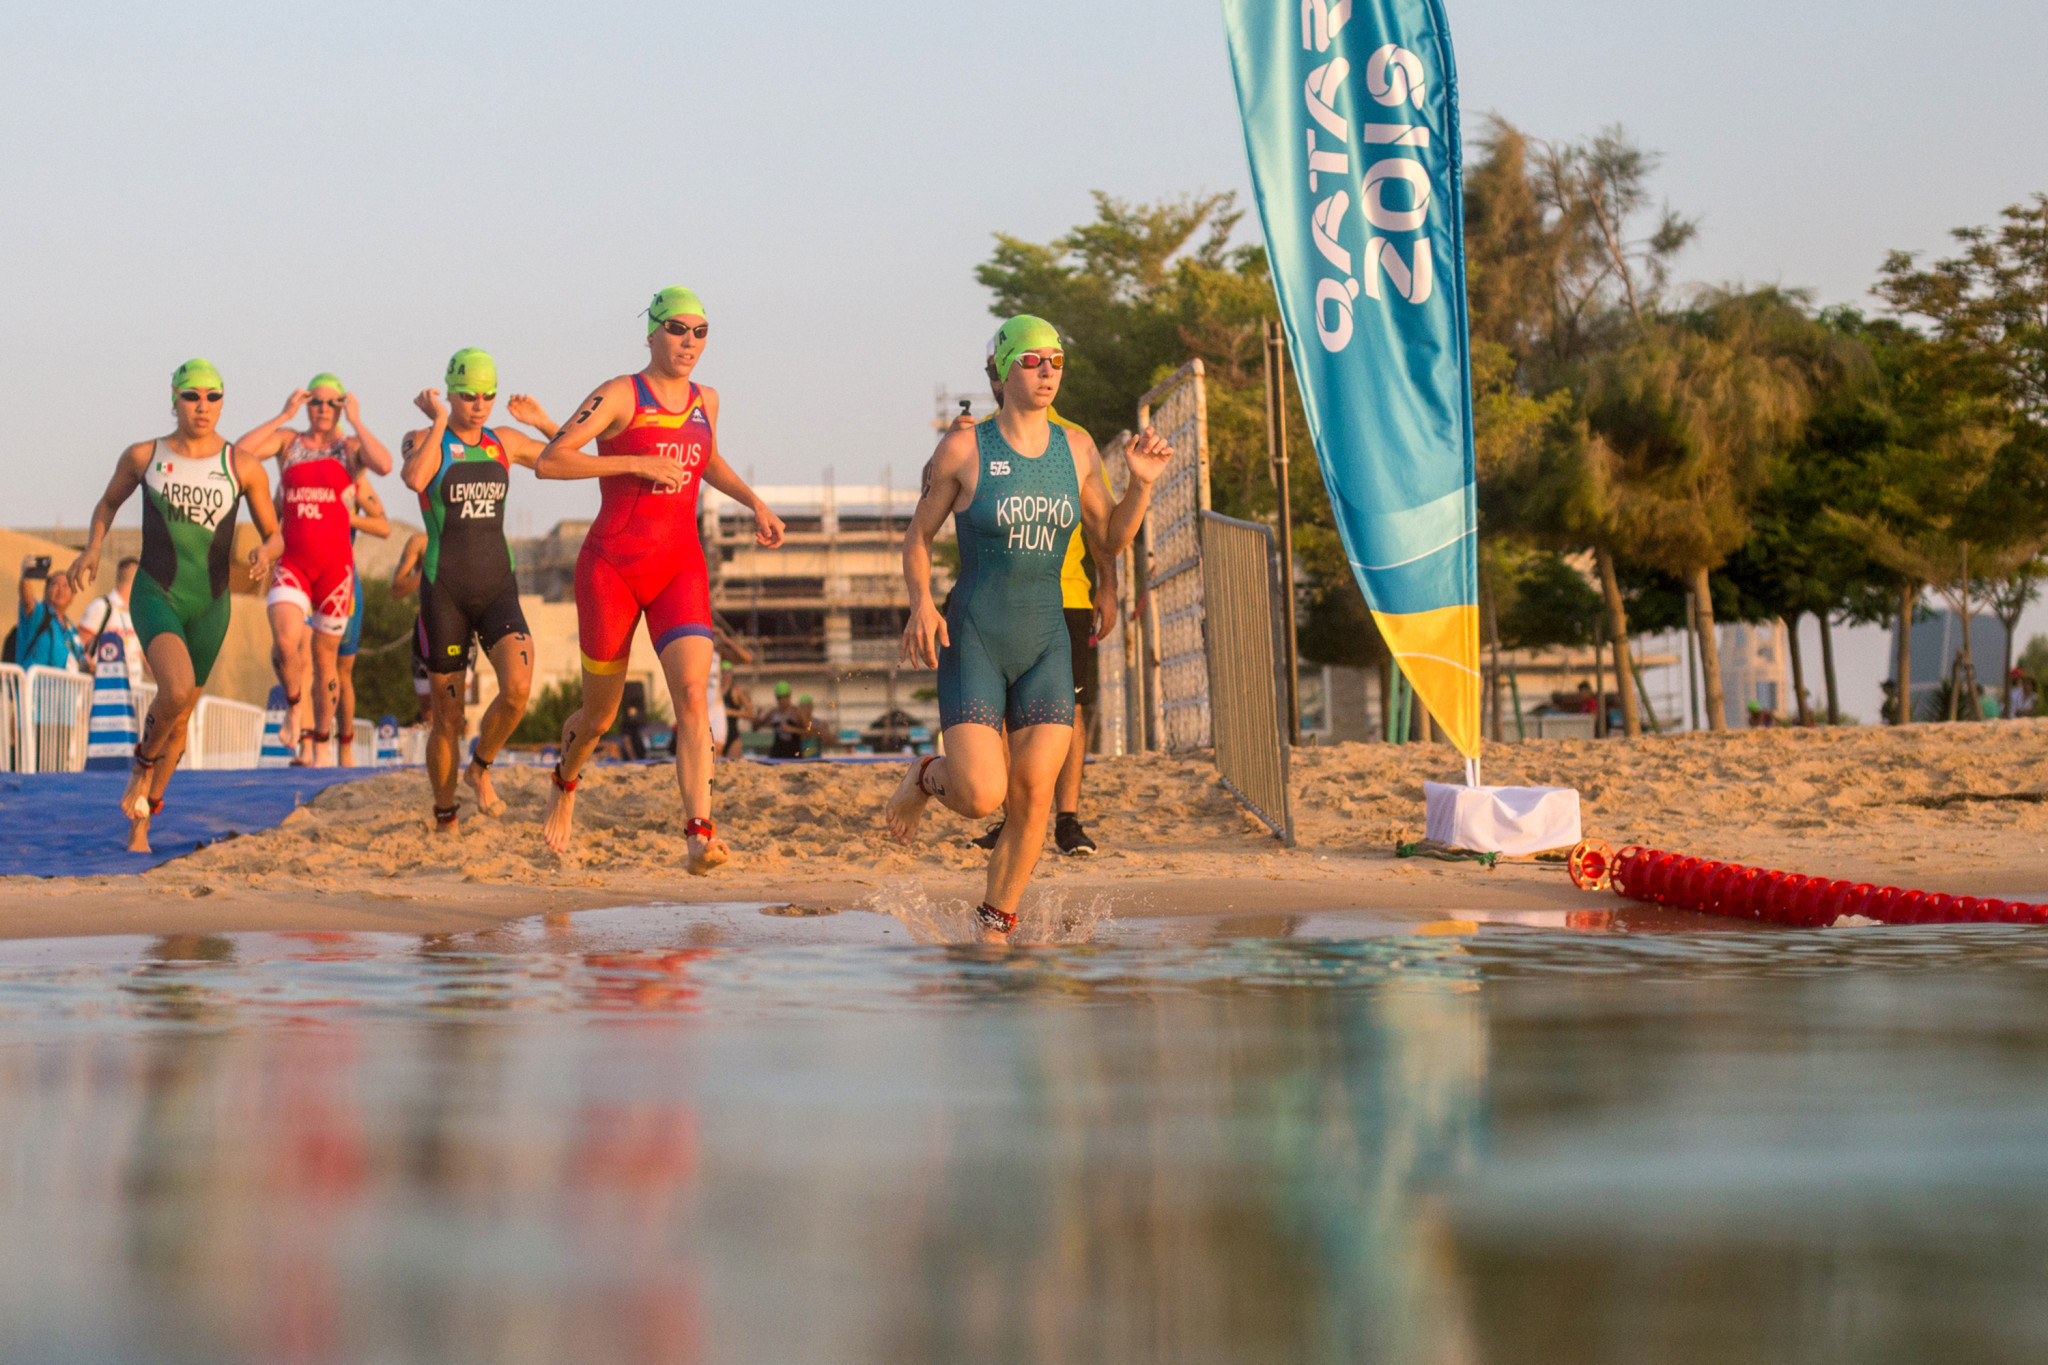 The leaders start the pace in the early stages of the aquathlon mixed team relay ©ANOC World Beach Games